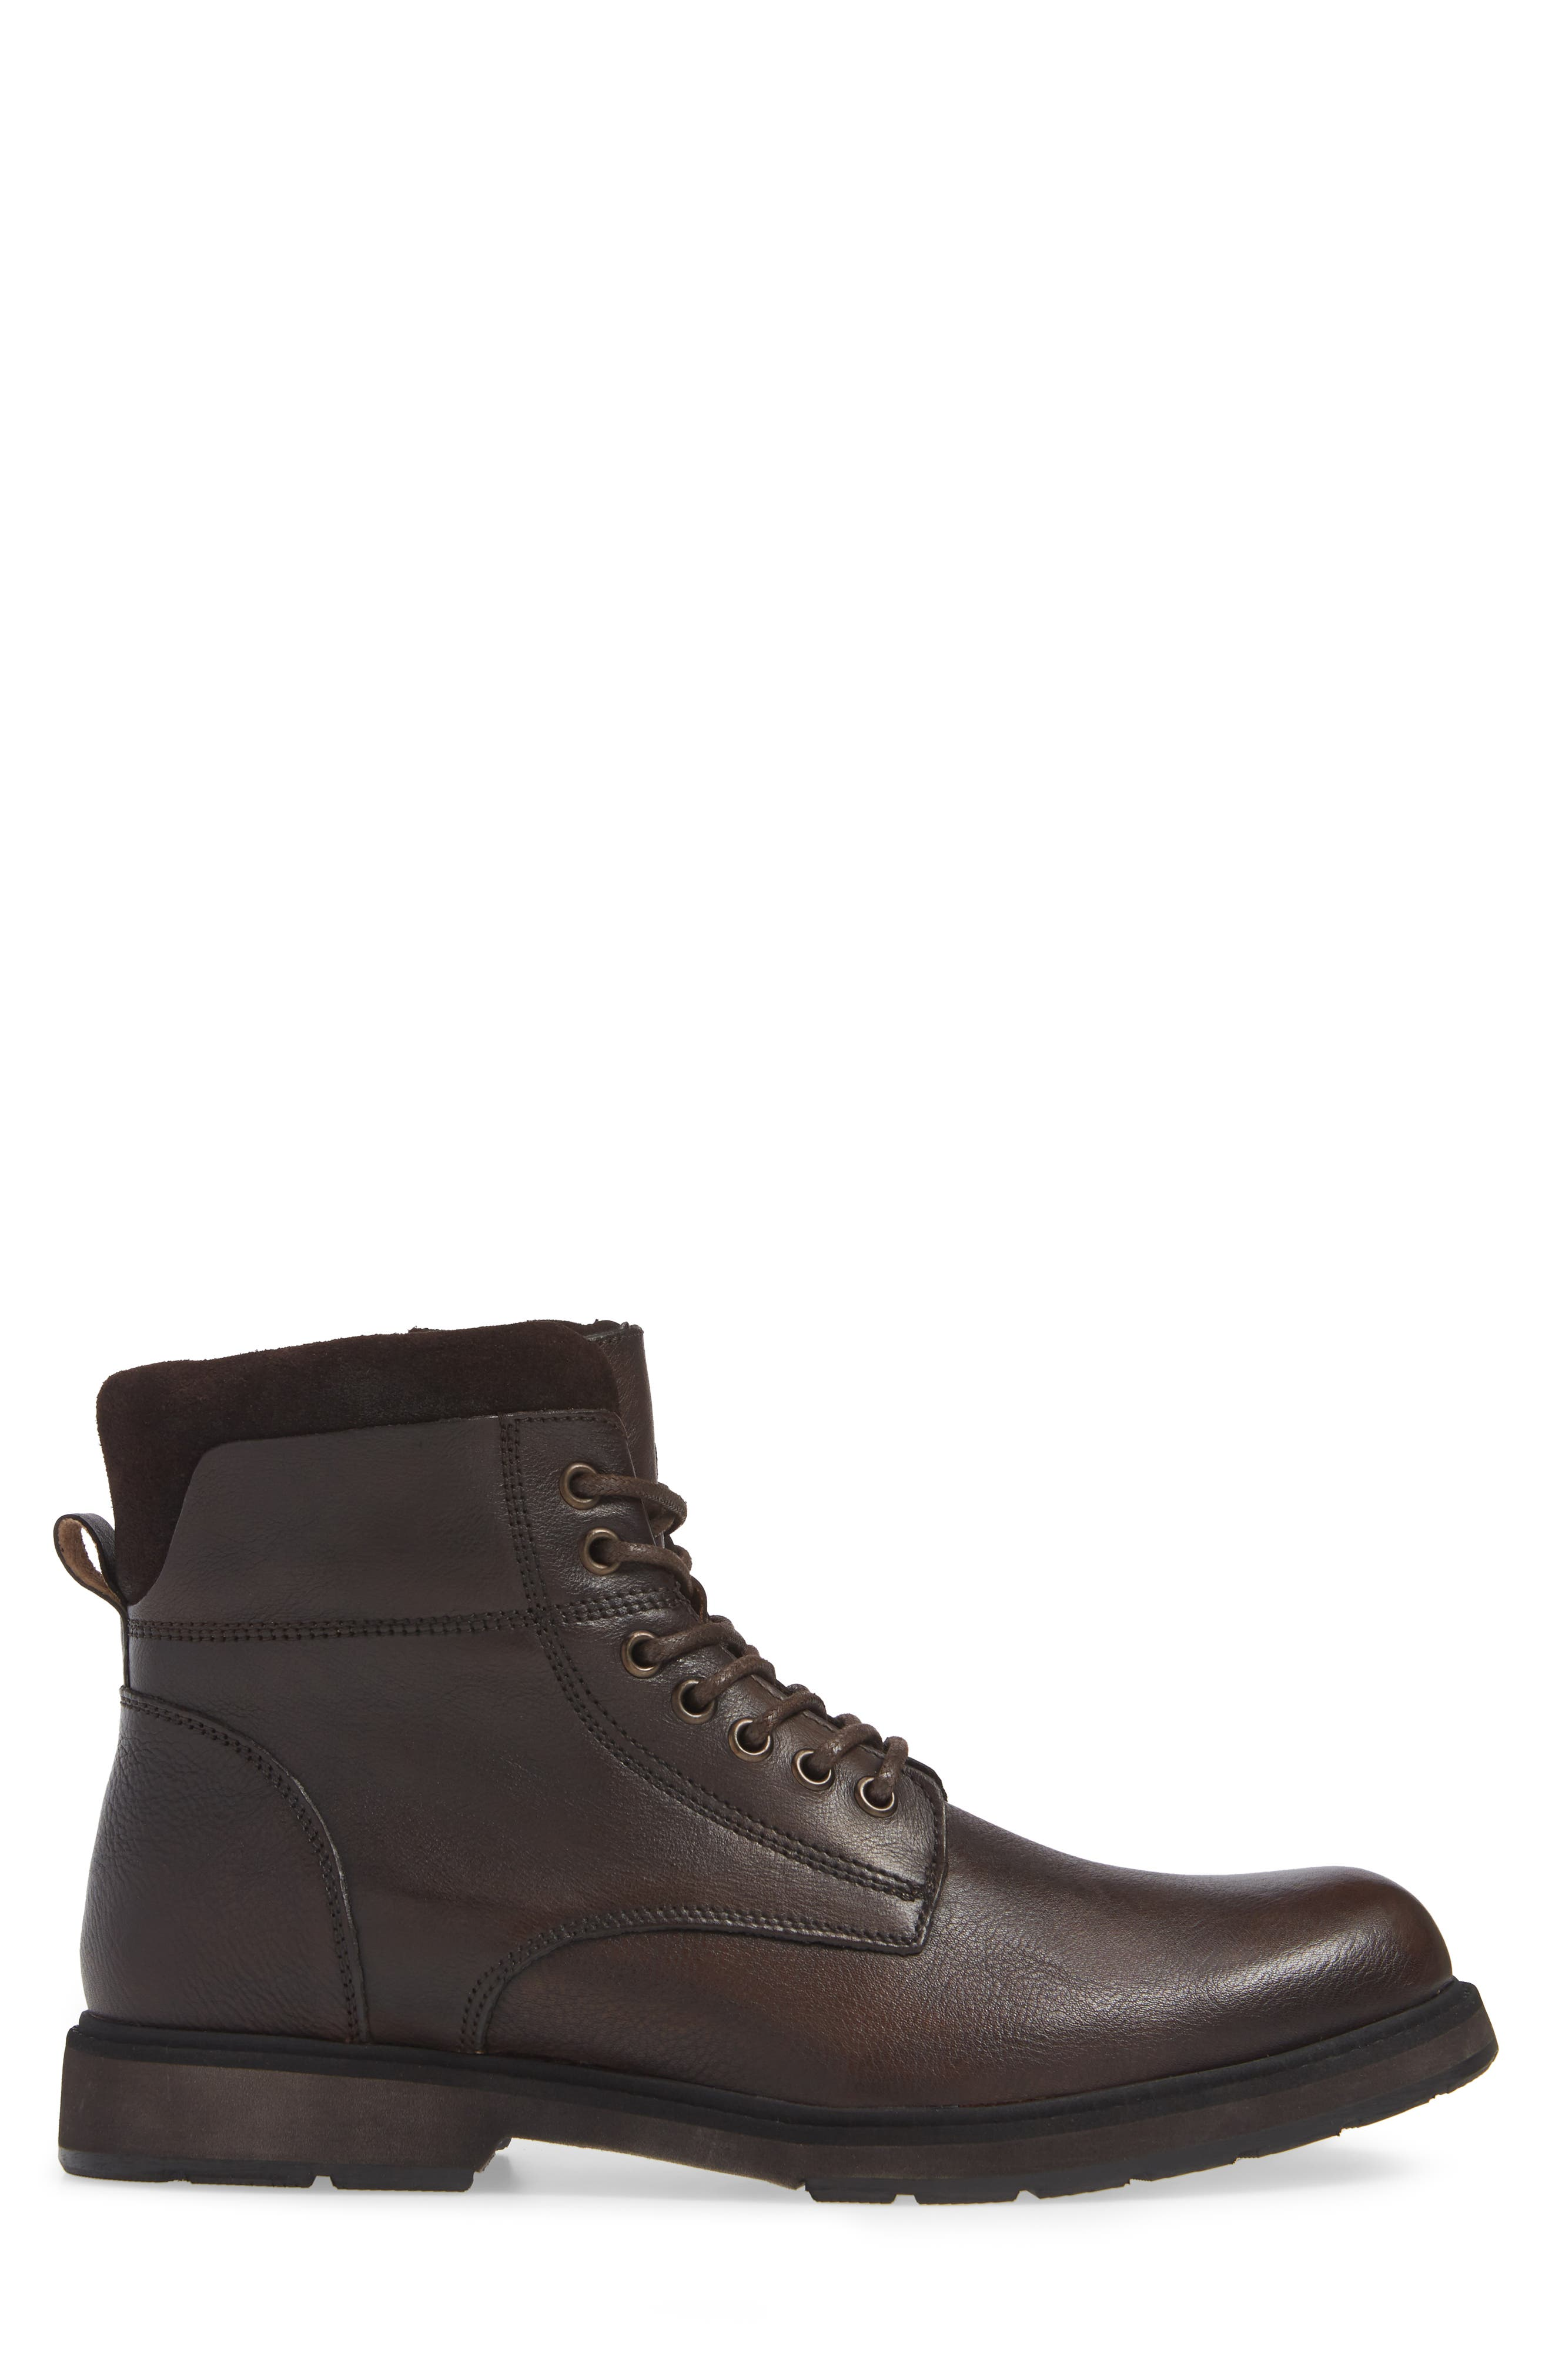 REACTION KENNETH COLE, Drue Pebbled Combat Boot, Alternate thumbnail 3, color, BROWN LEATHER